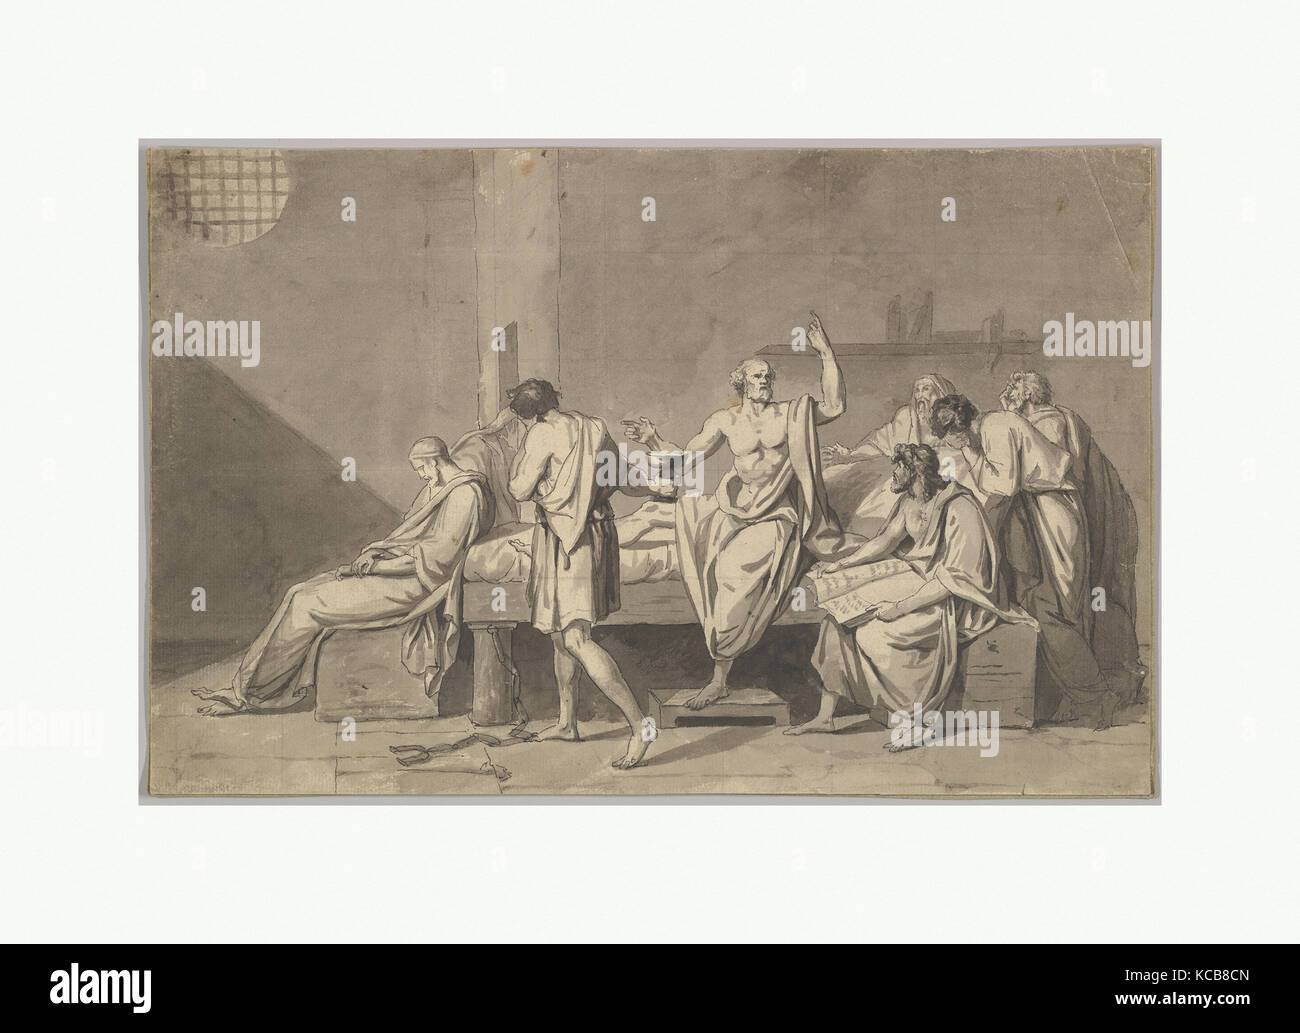 The death of socrates by jacques-louis david essay